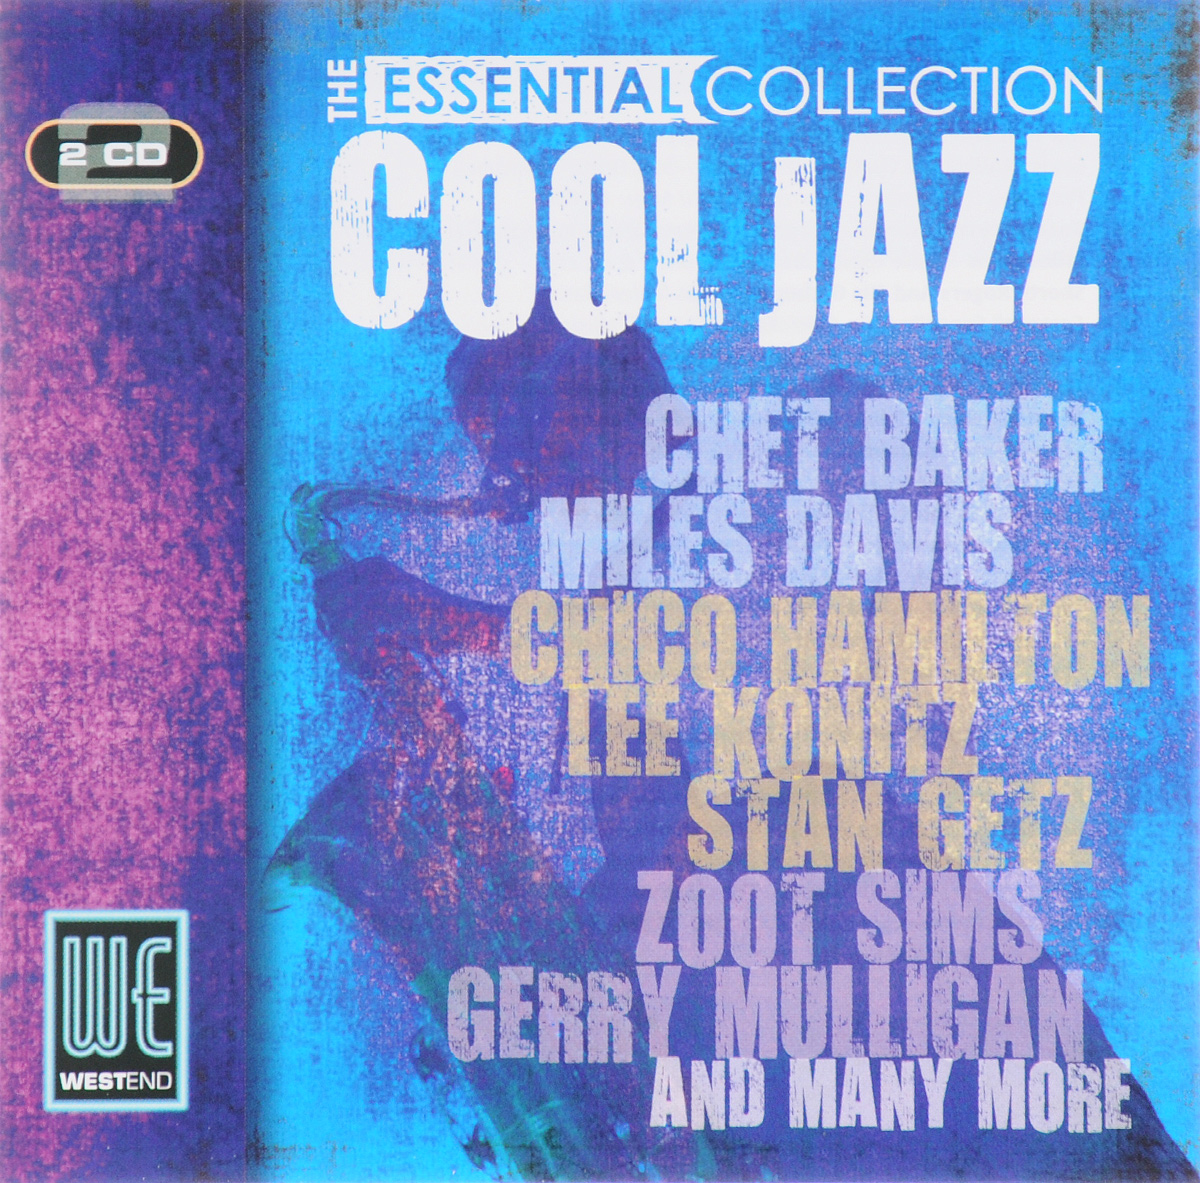 Jim Hall Trio,Chet Baker Quartet,Barney Kessel Quintet,Майлз Дэвис,Shorty Rogers and His Orchestra,Bill Perkins Quintet,Ли Кониц,The Dave Brubeck Quartet,Gerry Mulligan Quintet,Red Mitchell Sextet The Essential Collection. Cool Jazz (2 CD) the chico hamilton quintet the chico hamilton quintet gongs east